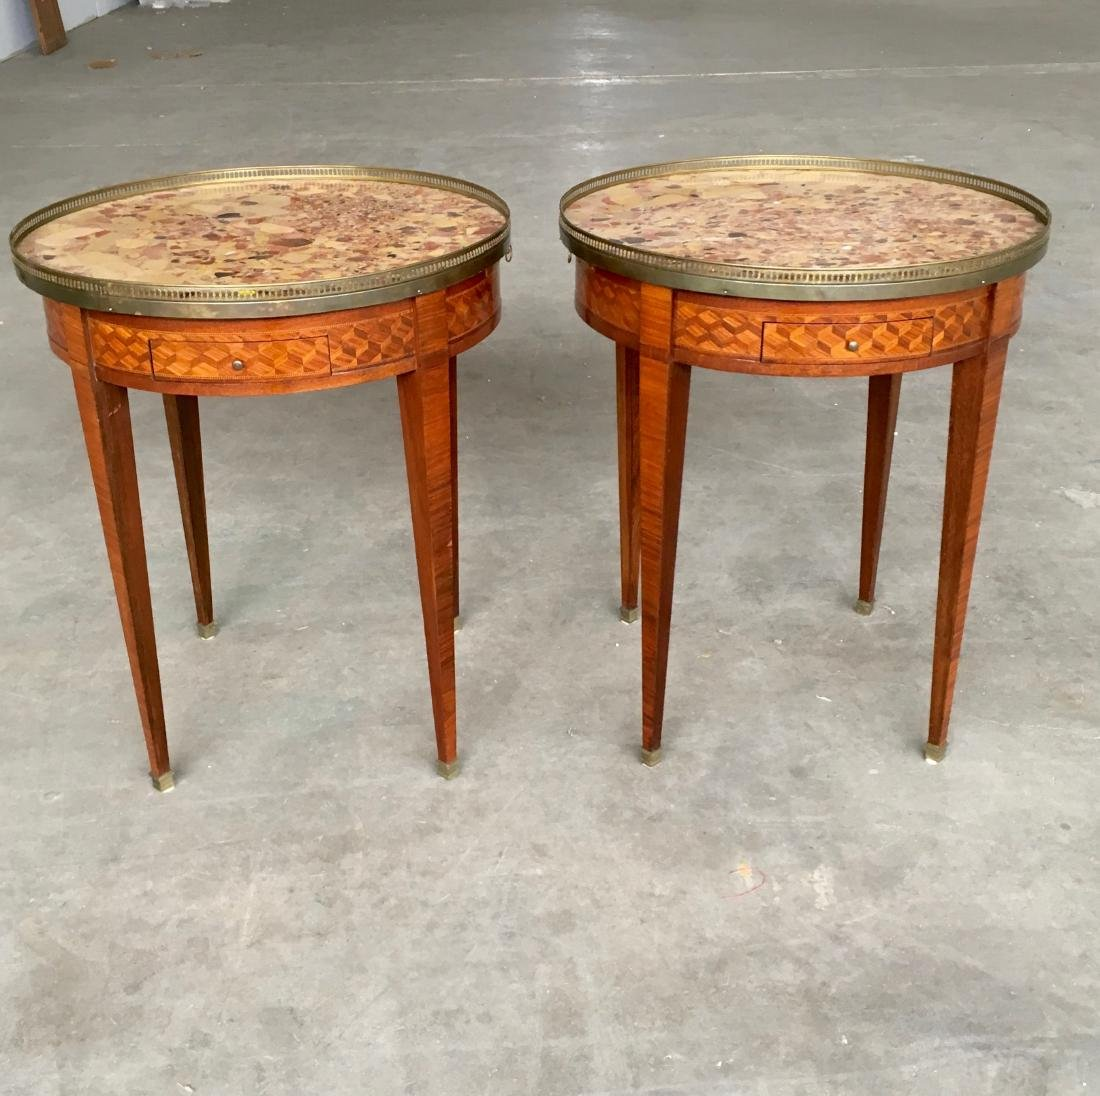 Pair of 19th cent. LXVI style marble top bouillotte